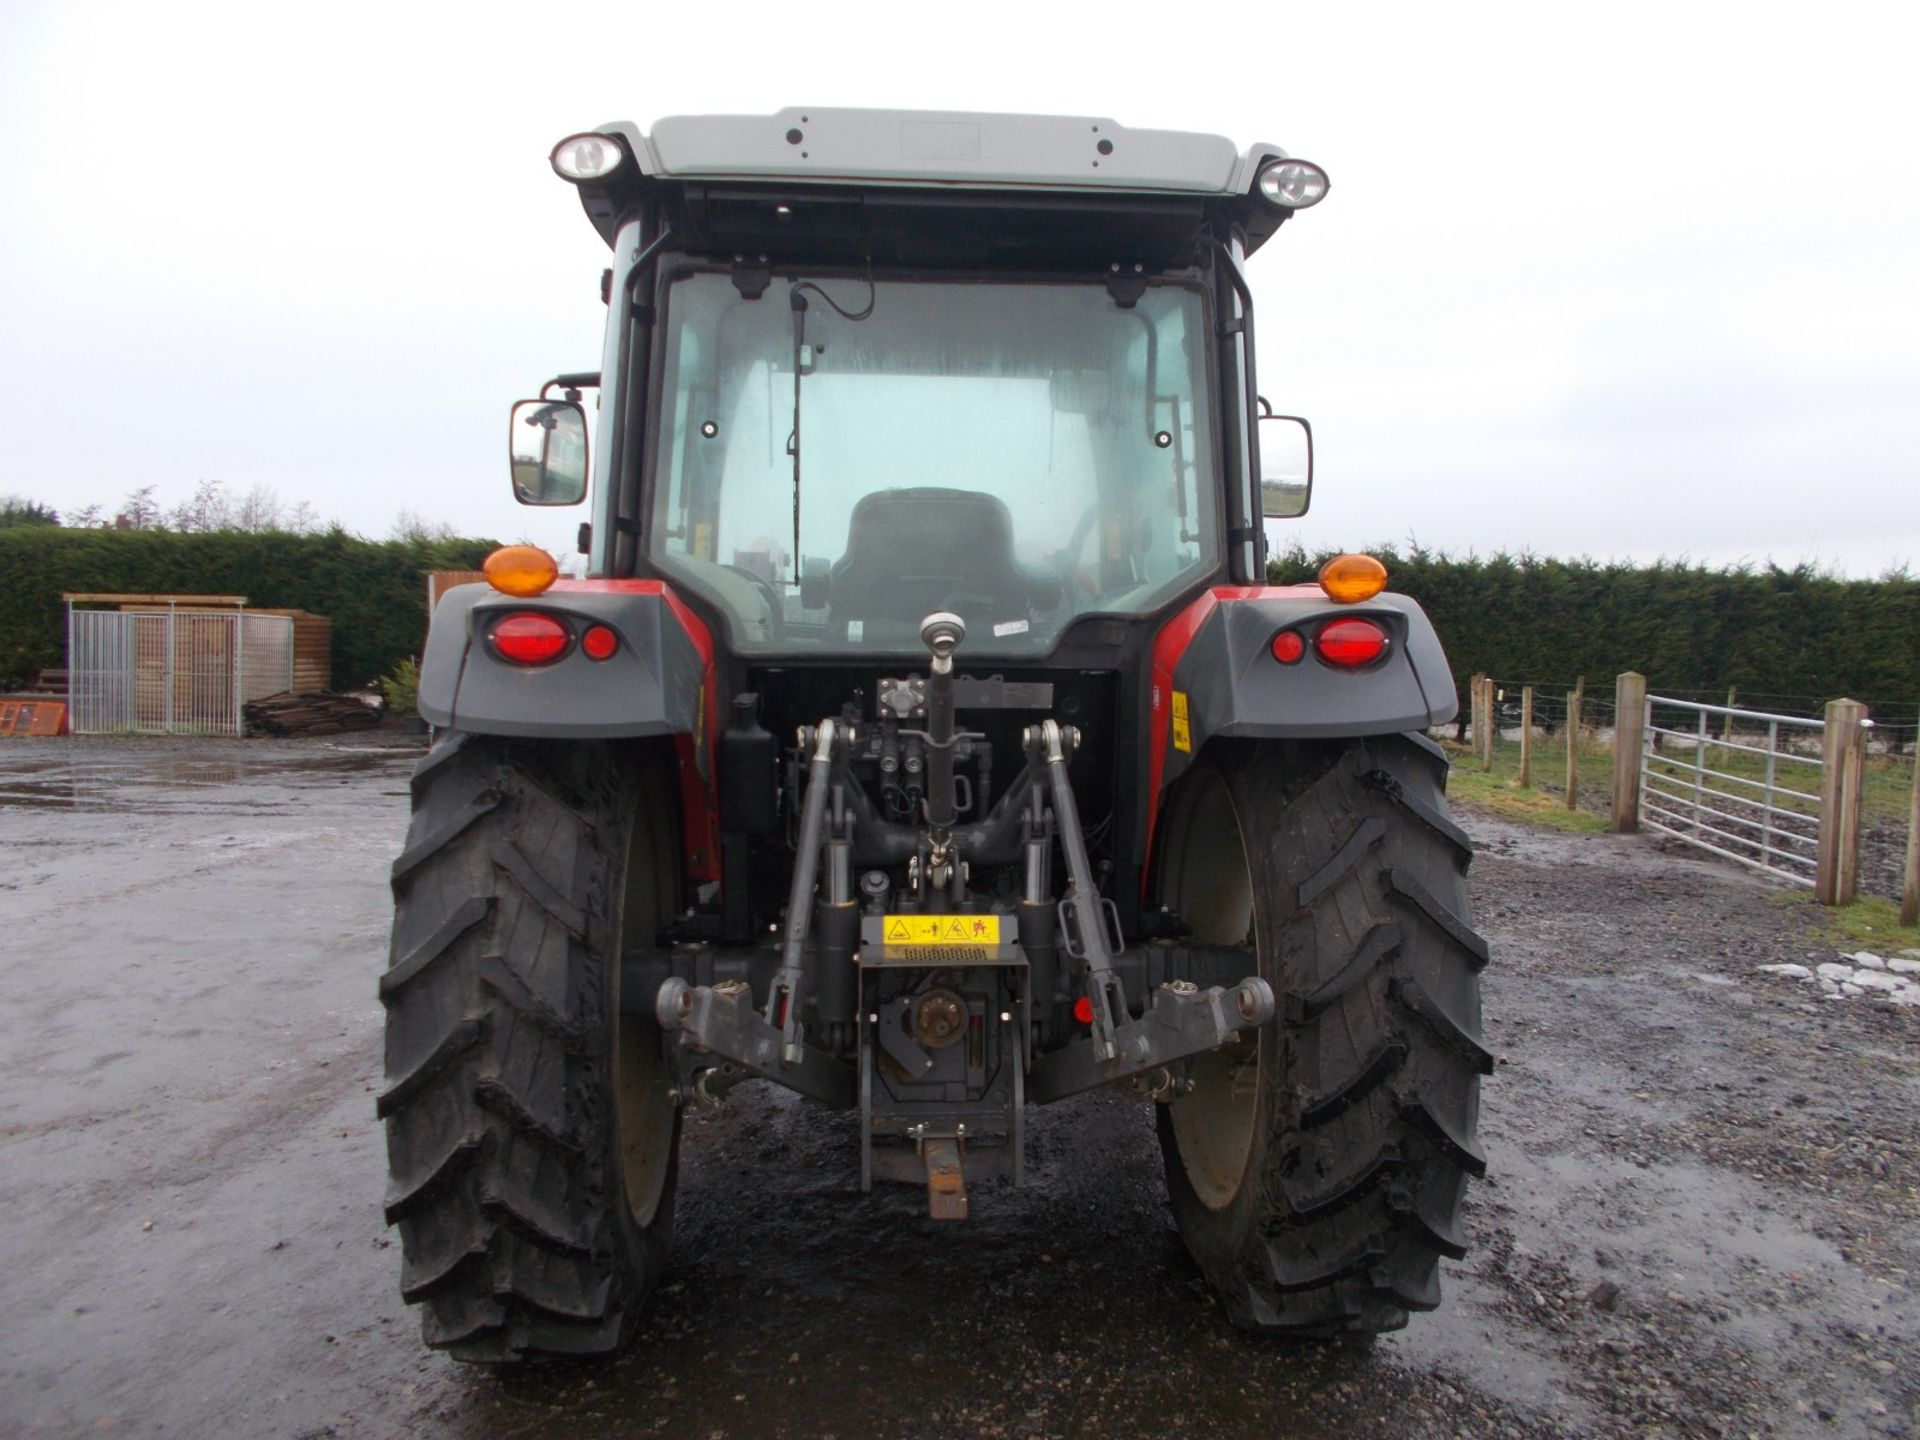 2018 MASSEY FERGUSON 4710 4WD TRACTOR WITH LOADER, AGCO 3.3 LITRE 3CYL TURBO DIESEL *PLUS VAT* - Image 6 of 21